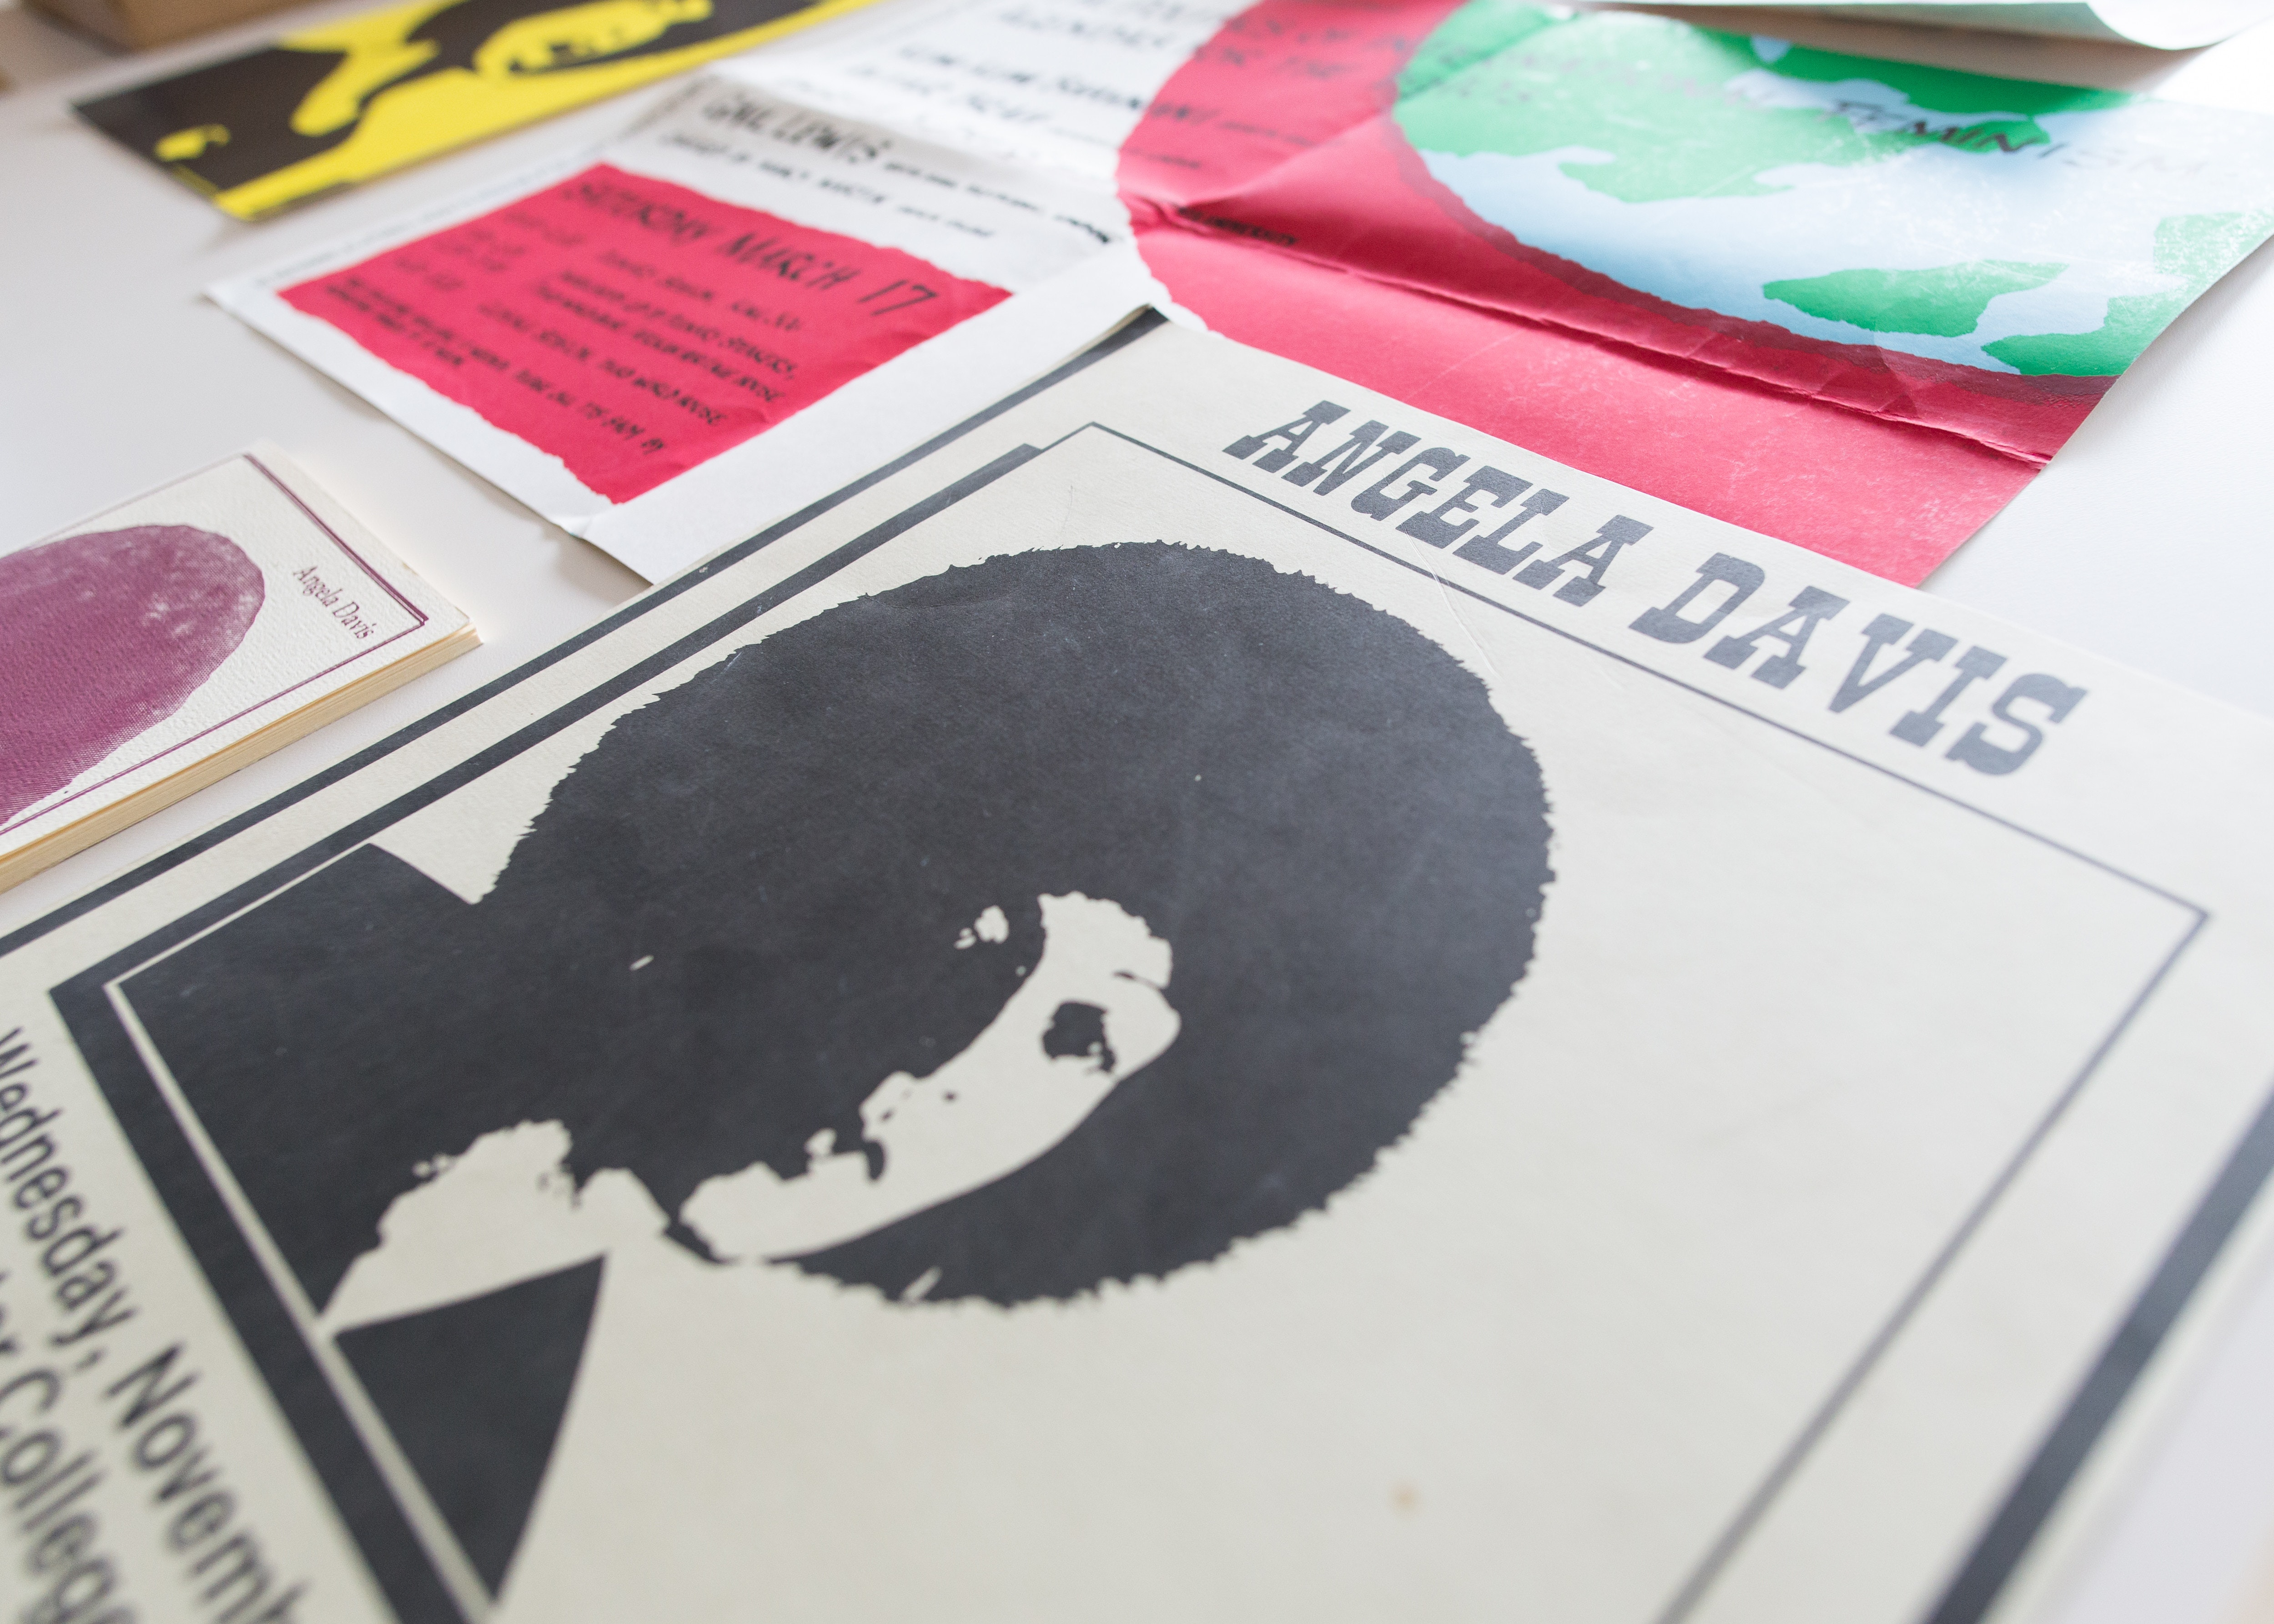 Items from the Angela Y. Davis Papers